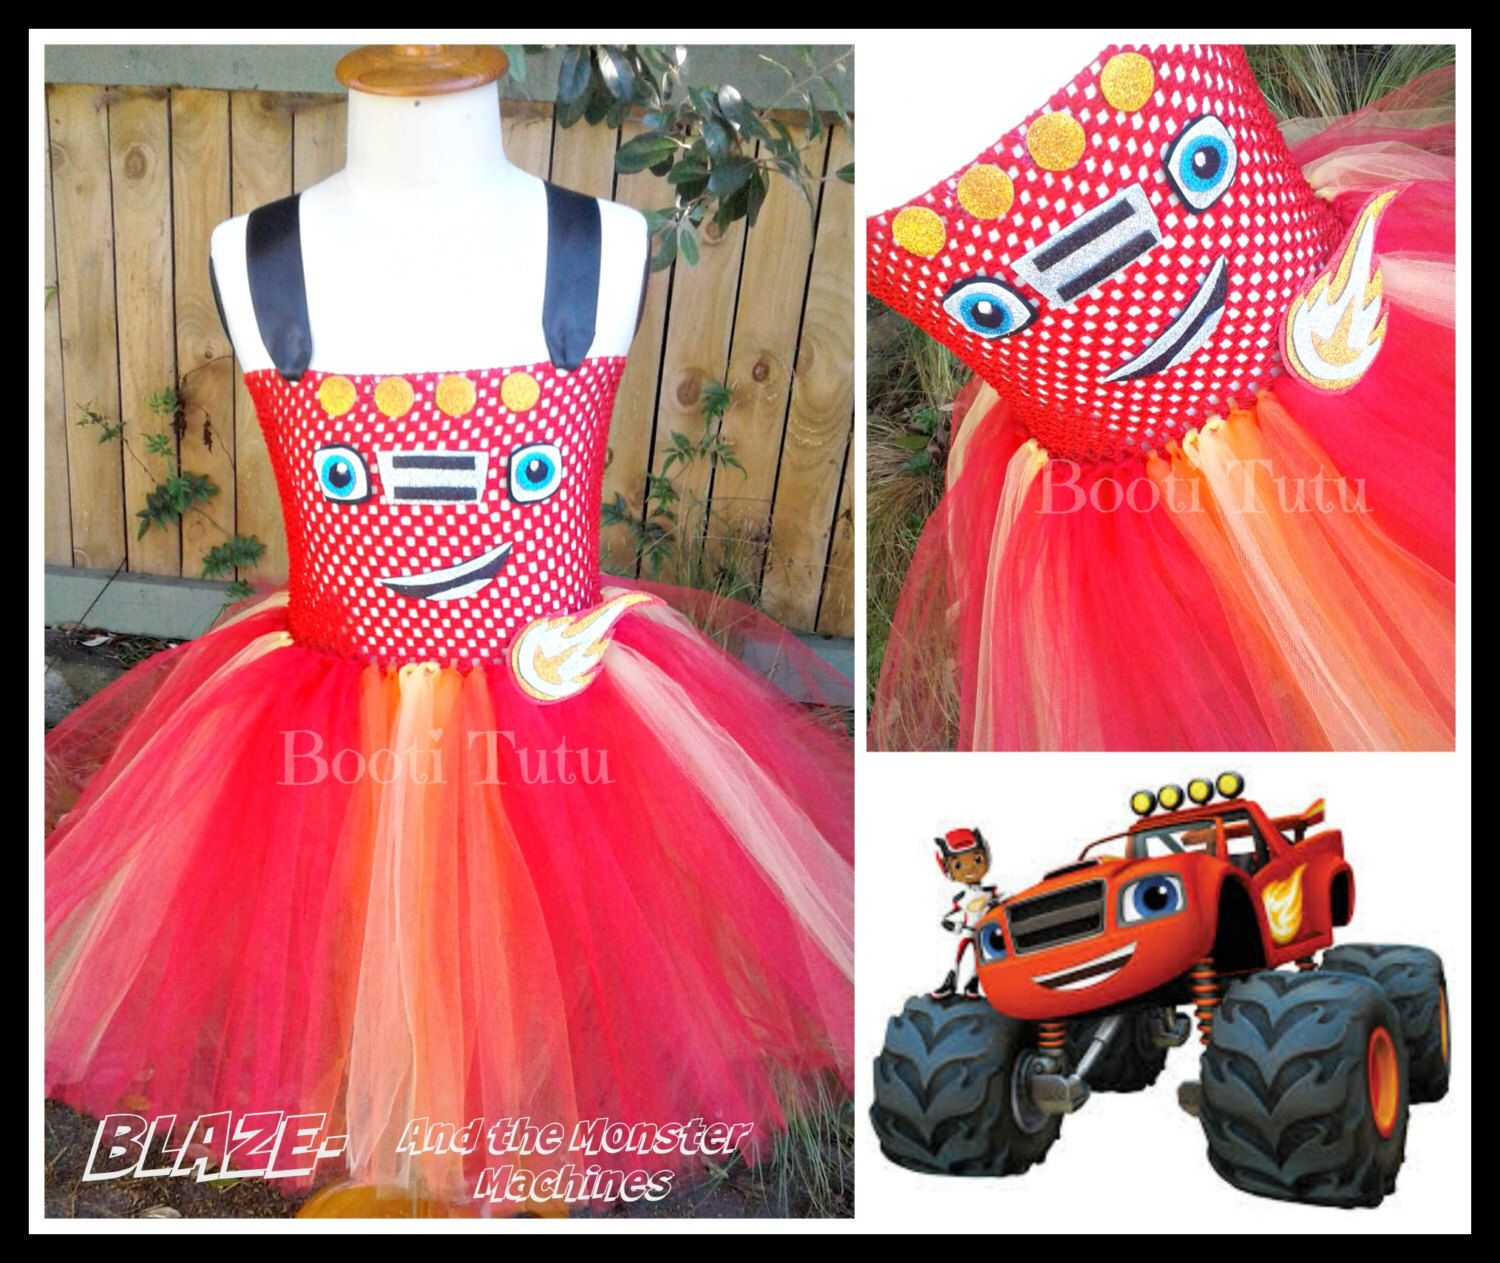 Monster Truck Tutu by BootiTutu on Etsy https://www.etsy.com/listing/470440911/monster-truck-tutu